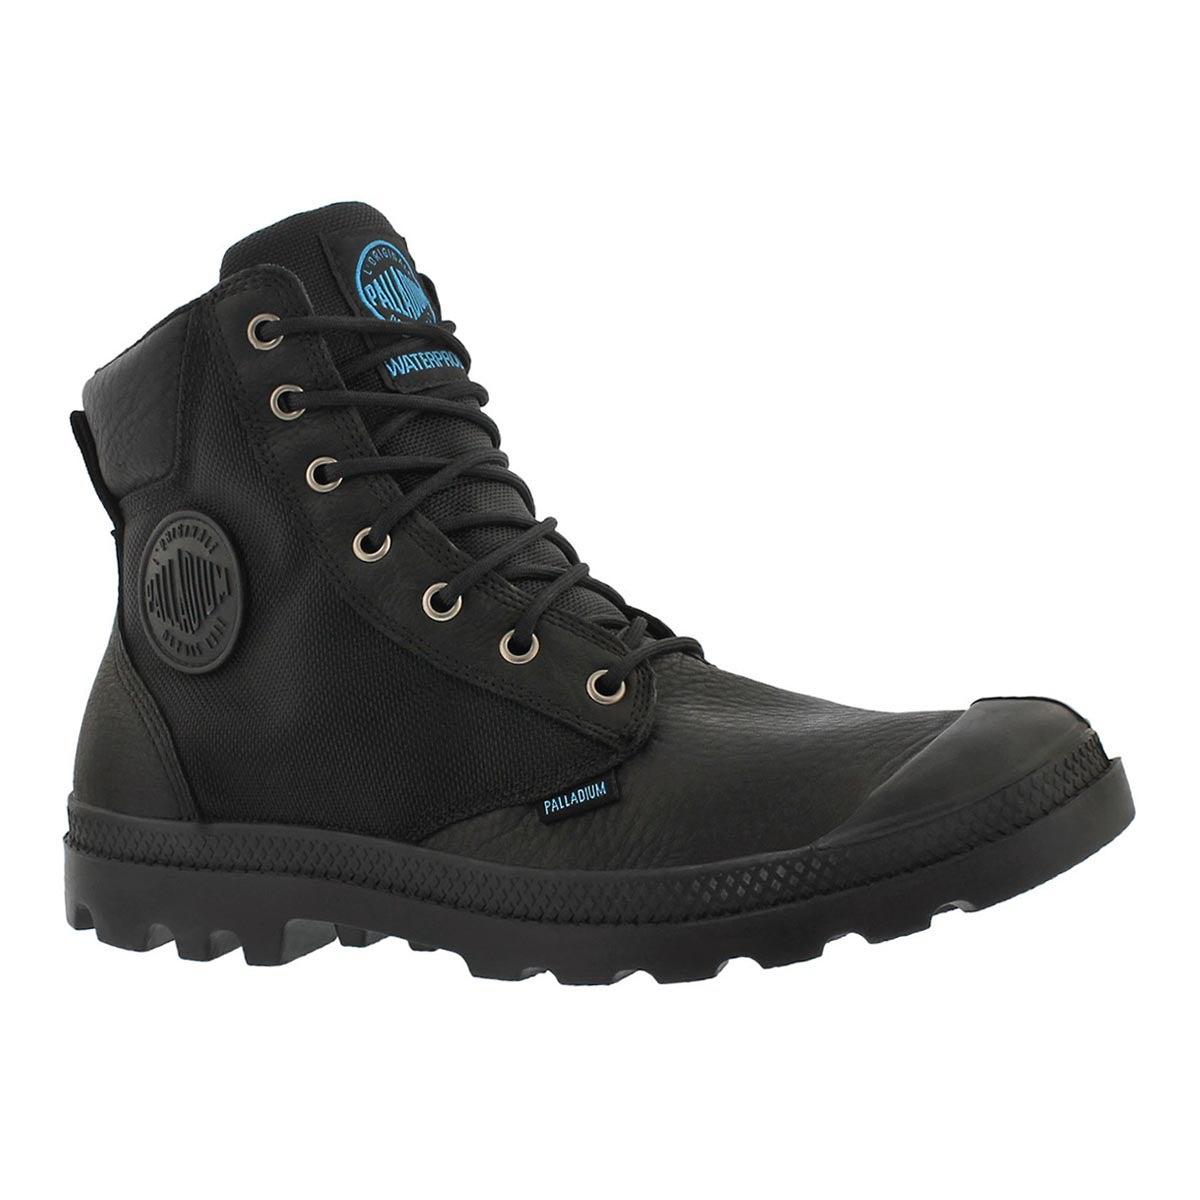 Men's PAMPA SPORT CUFF black waterproof boots